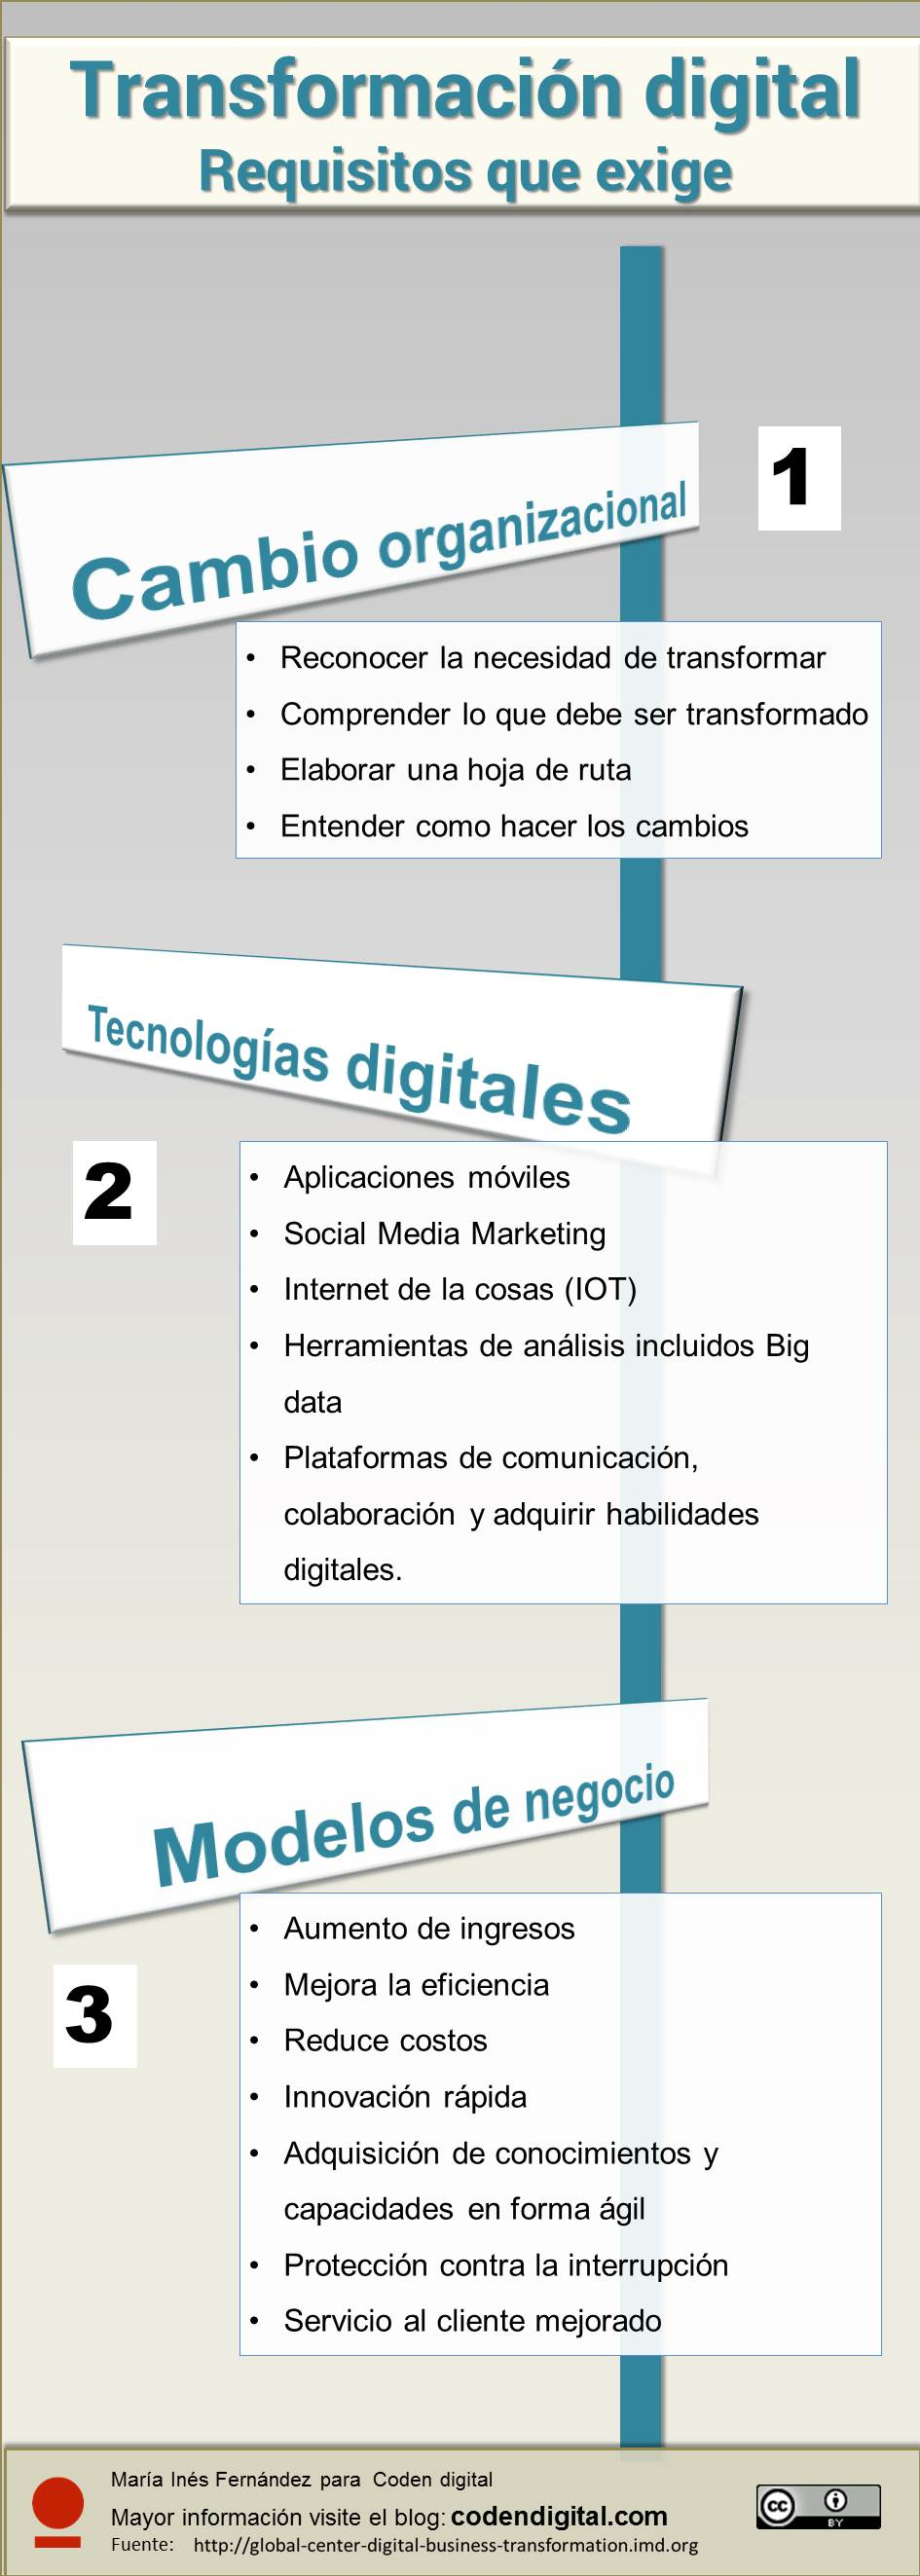 Infografía, requisitos que exige la Transformación digital